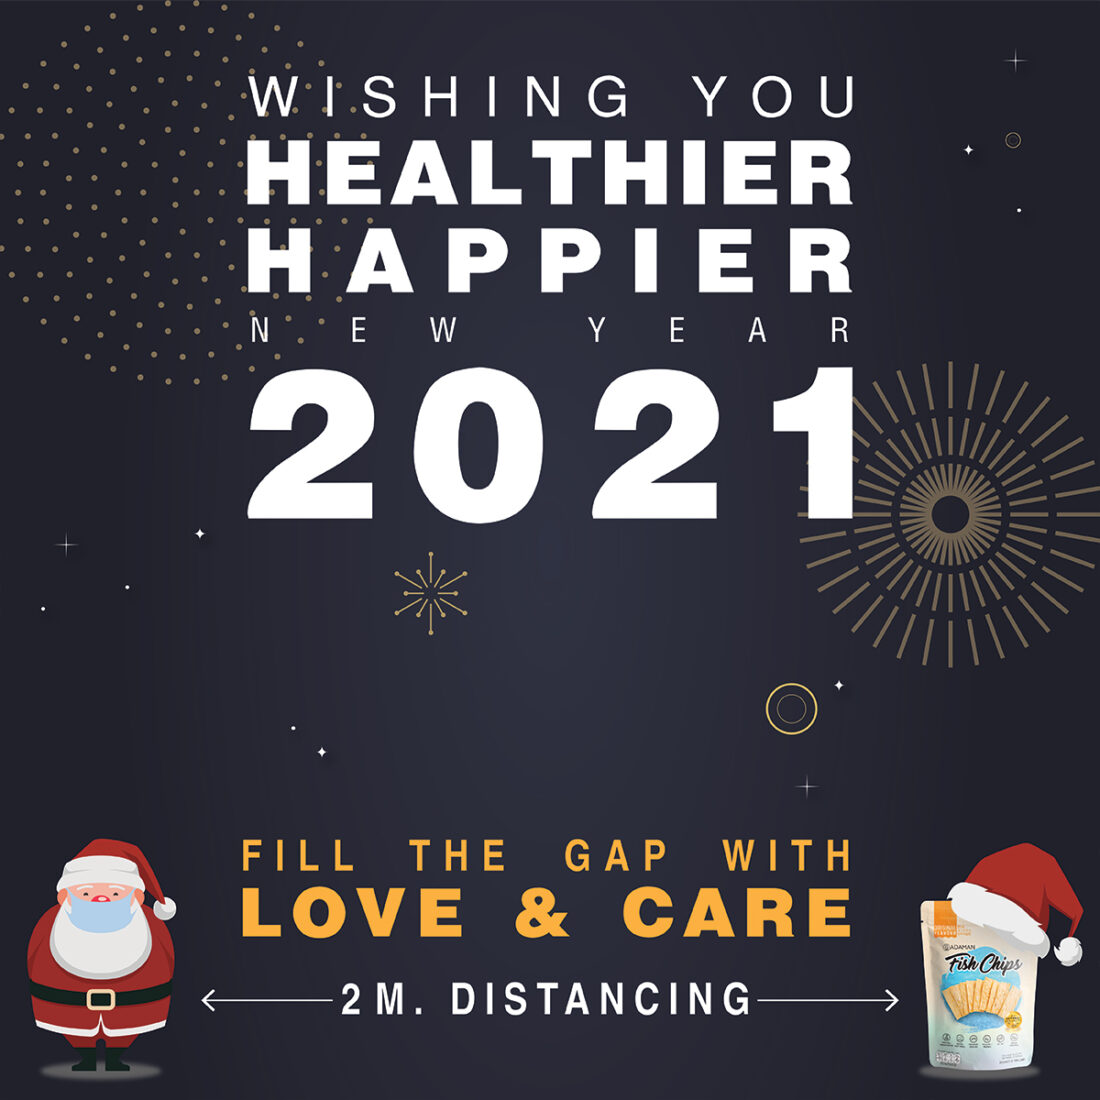 Wishing you all a Healthier & Happier New Year 2021.